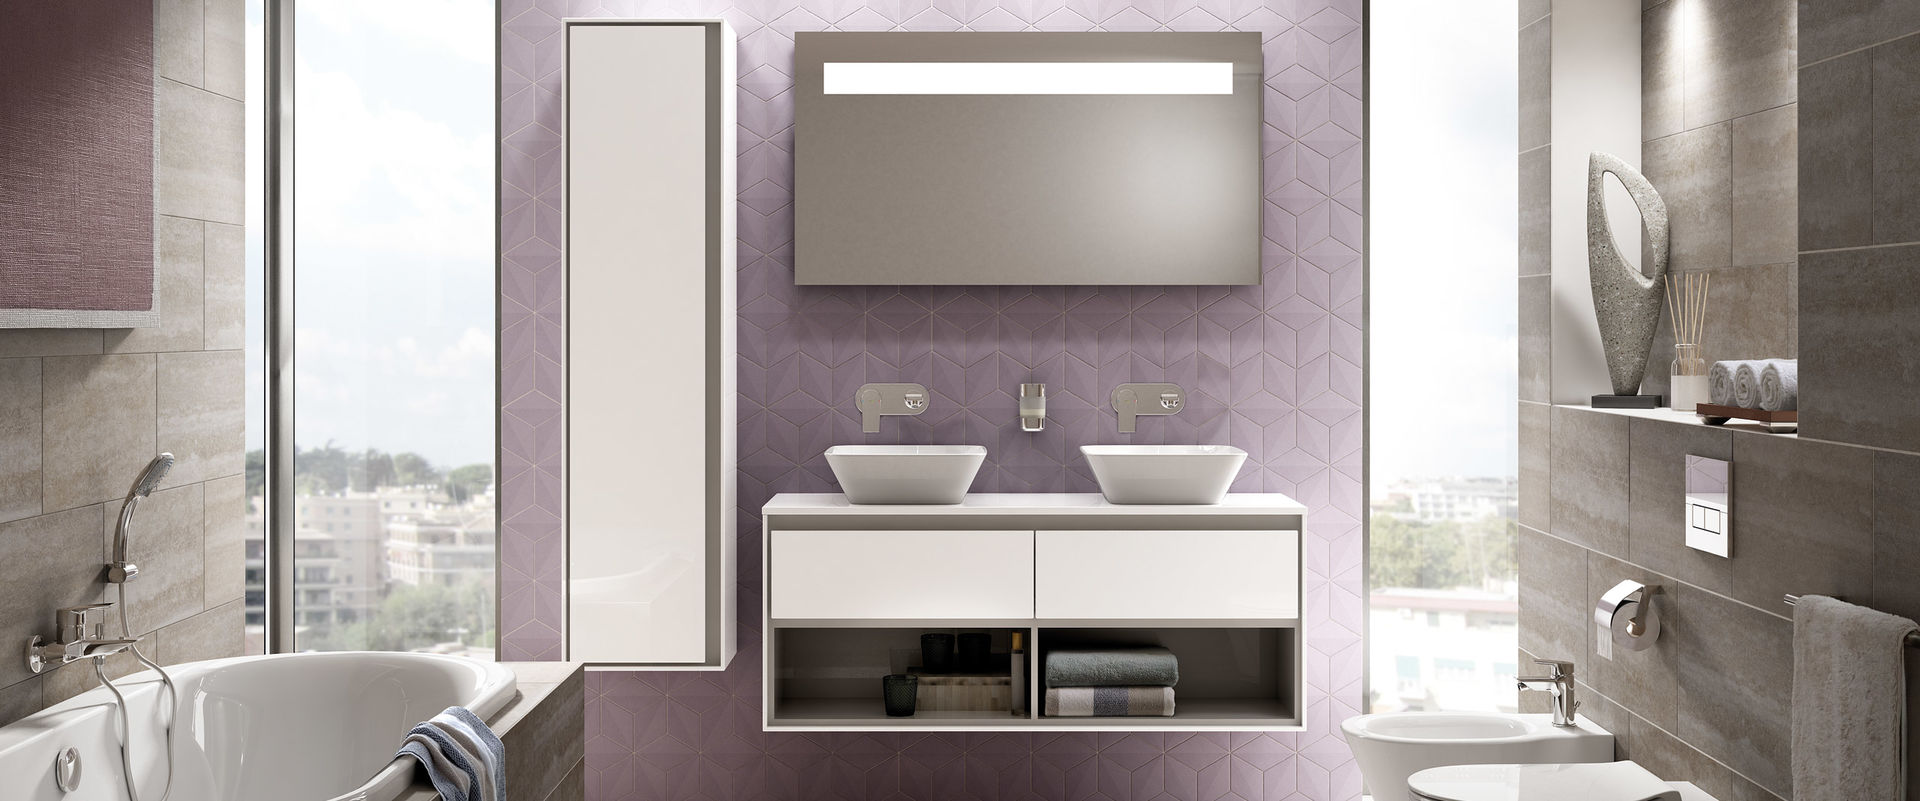 Ideal Standard Dea Badewanne Montageanleitung Toilette Ideal Standard Simple Toiletten Ohne Rand Cool